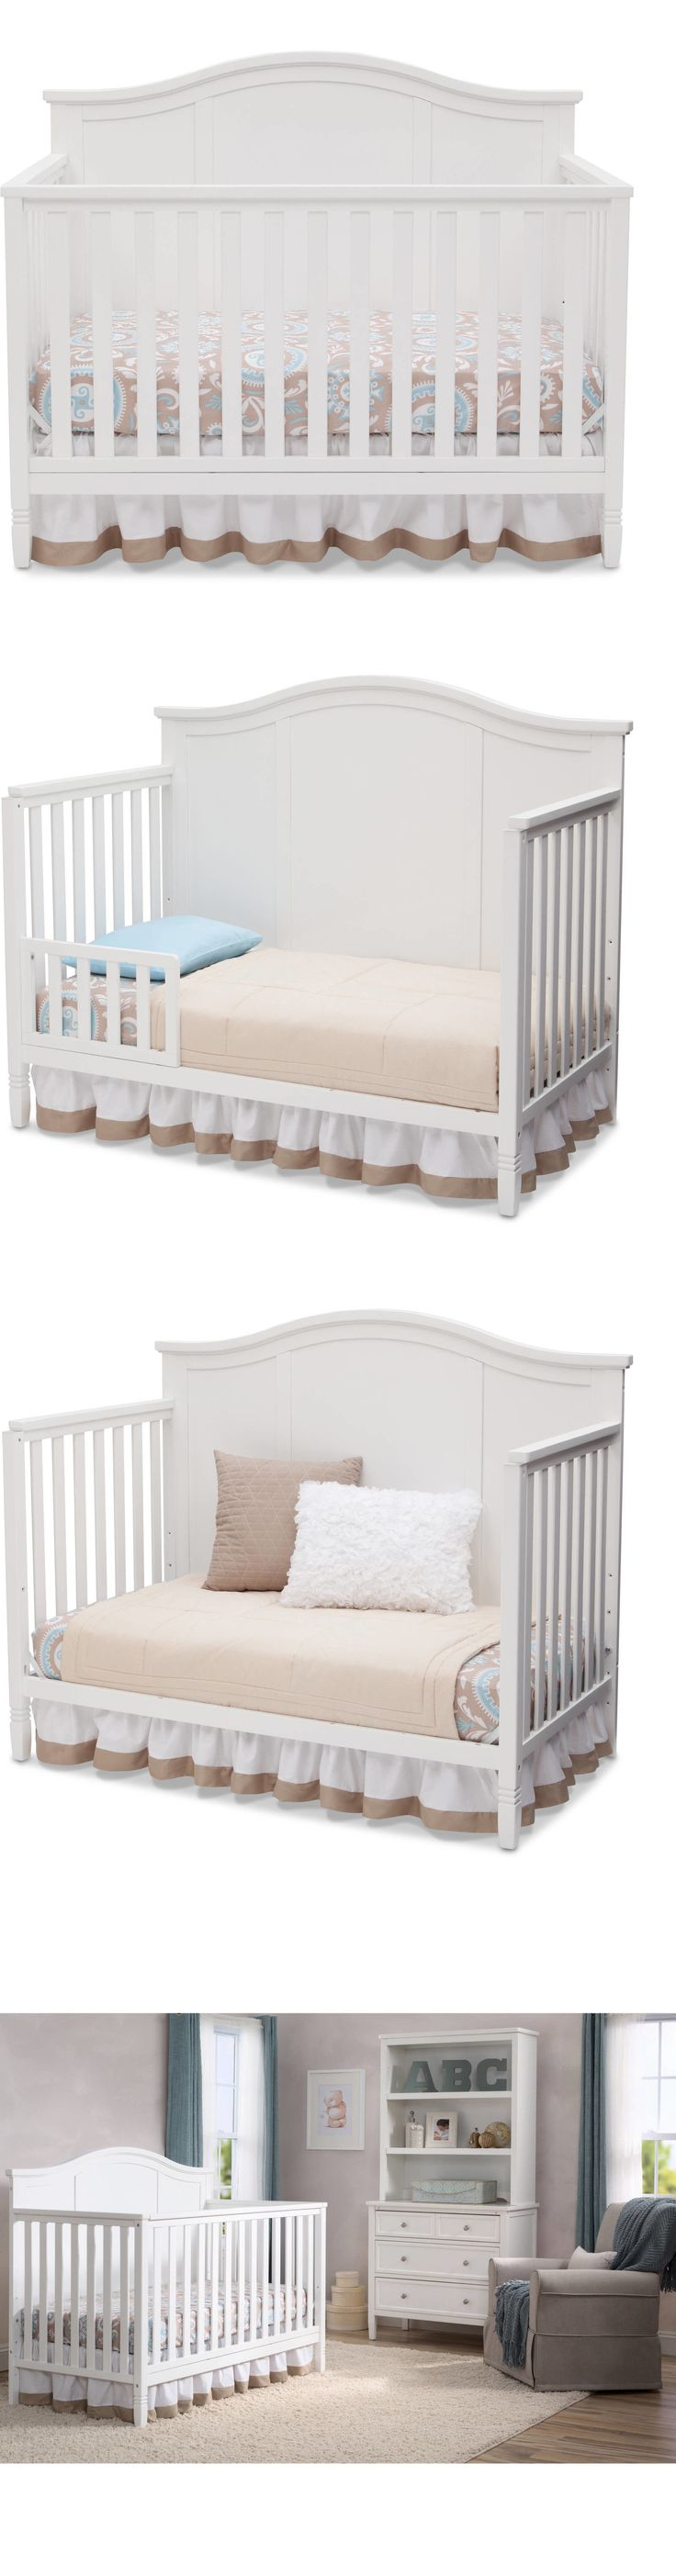 Nursery Furniture 20422: 4-In-1 Convertible Crib Toddler Bed Daybed And Full Size Bed White -> BUY IT NOW ONLY: $186.7 on eBay!